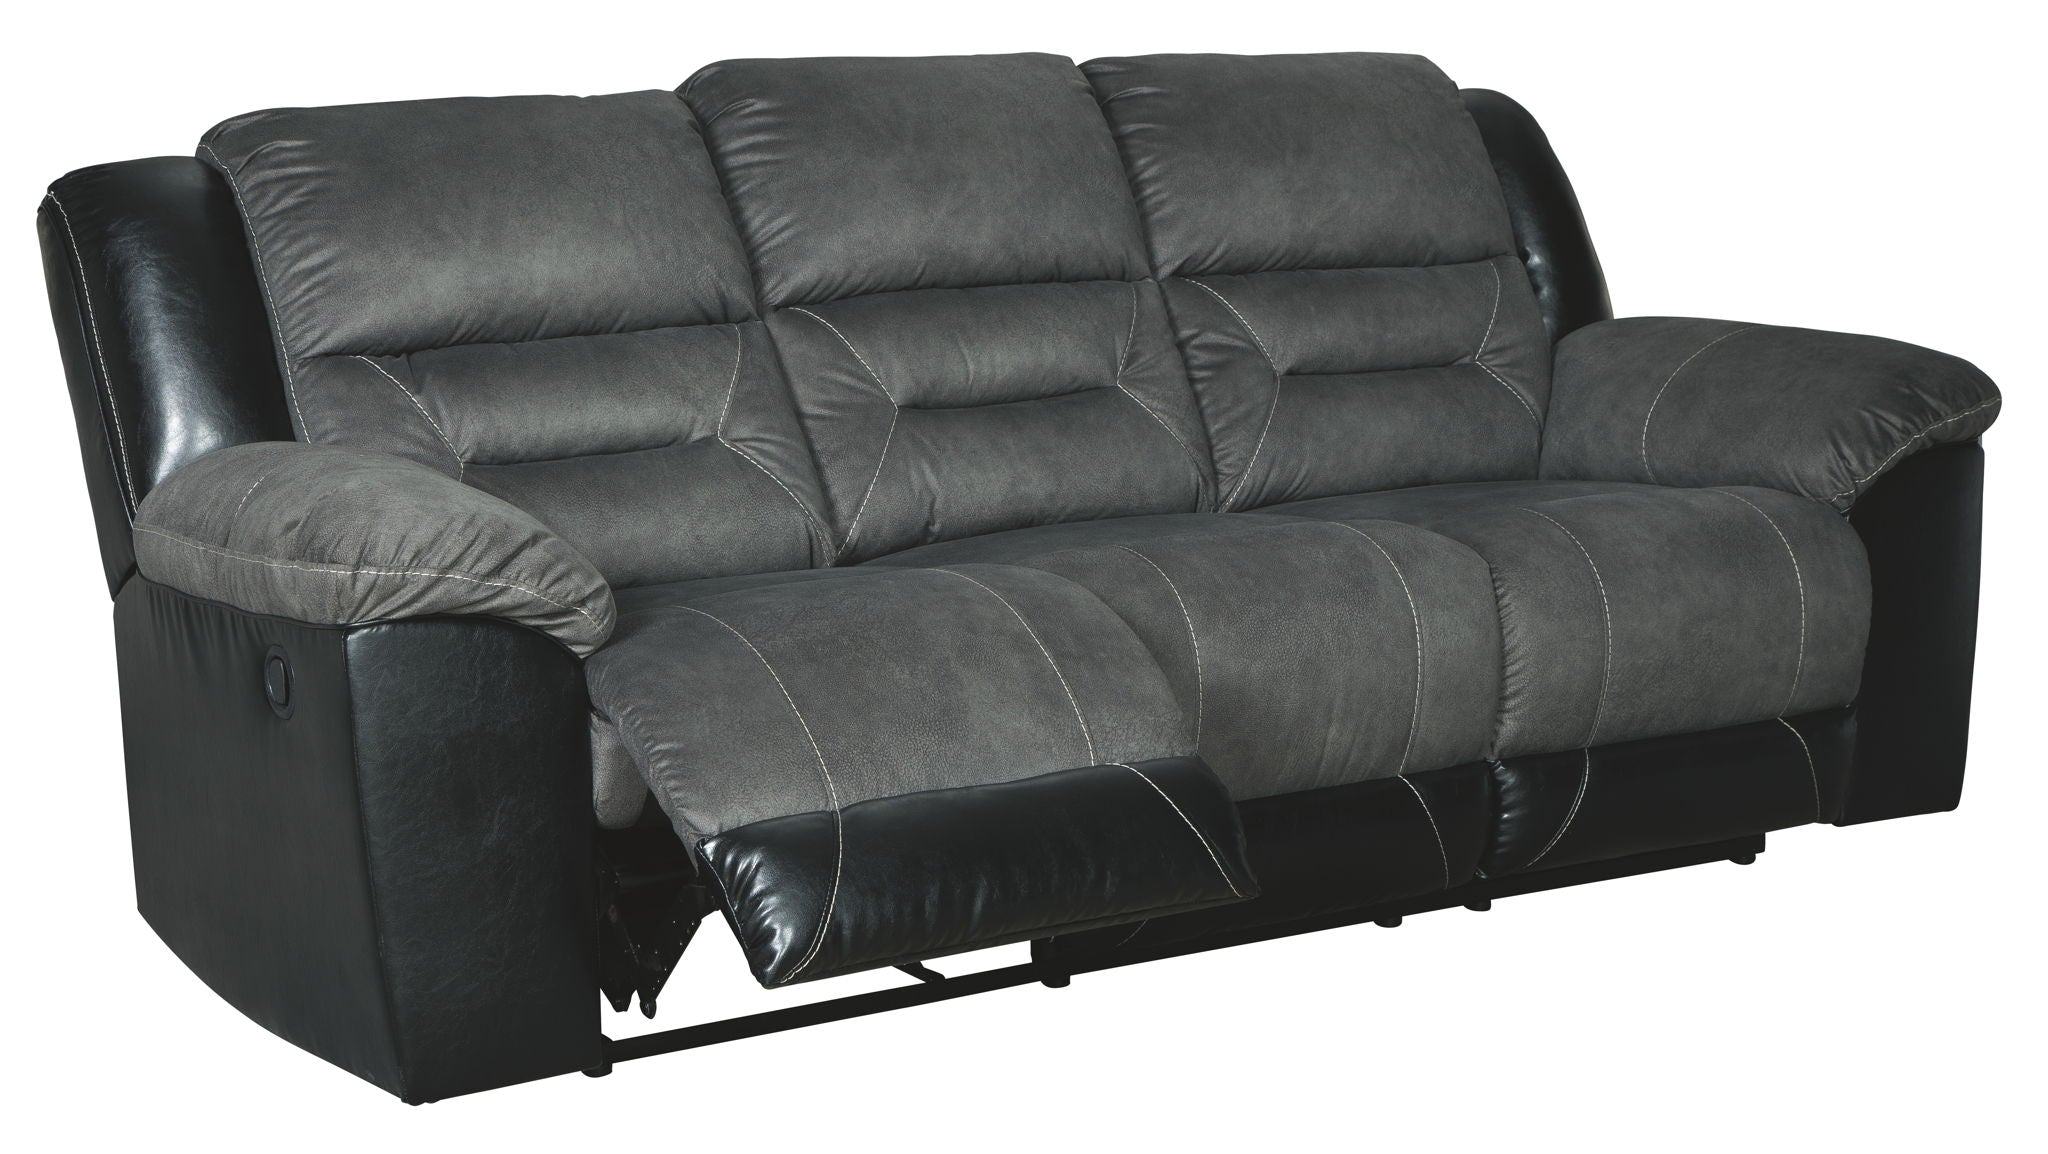 Earhart Reclining Sofa | Calgary's Furniture Store